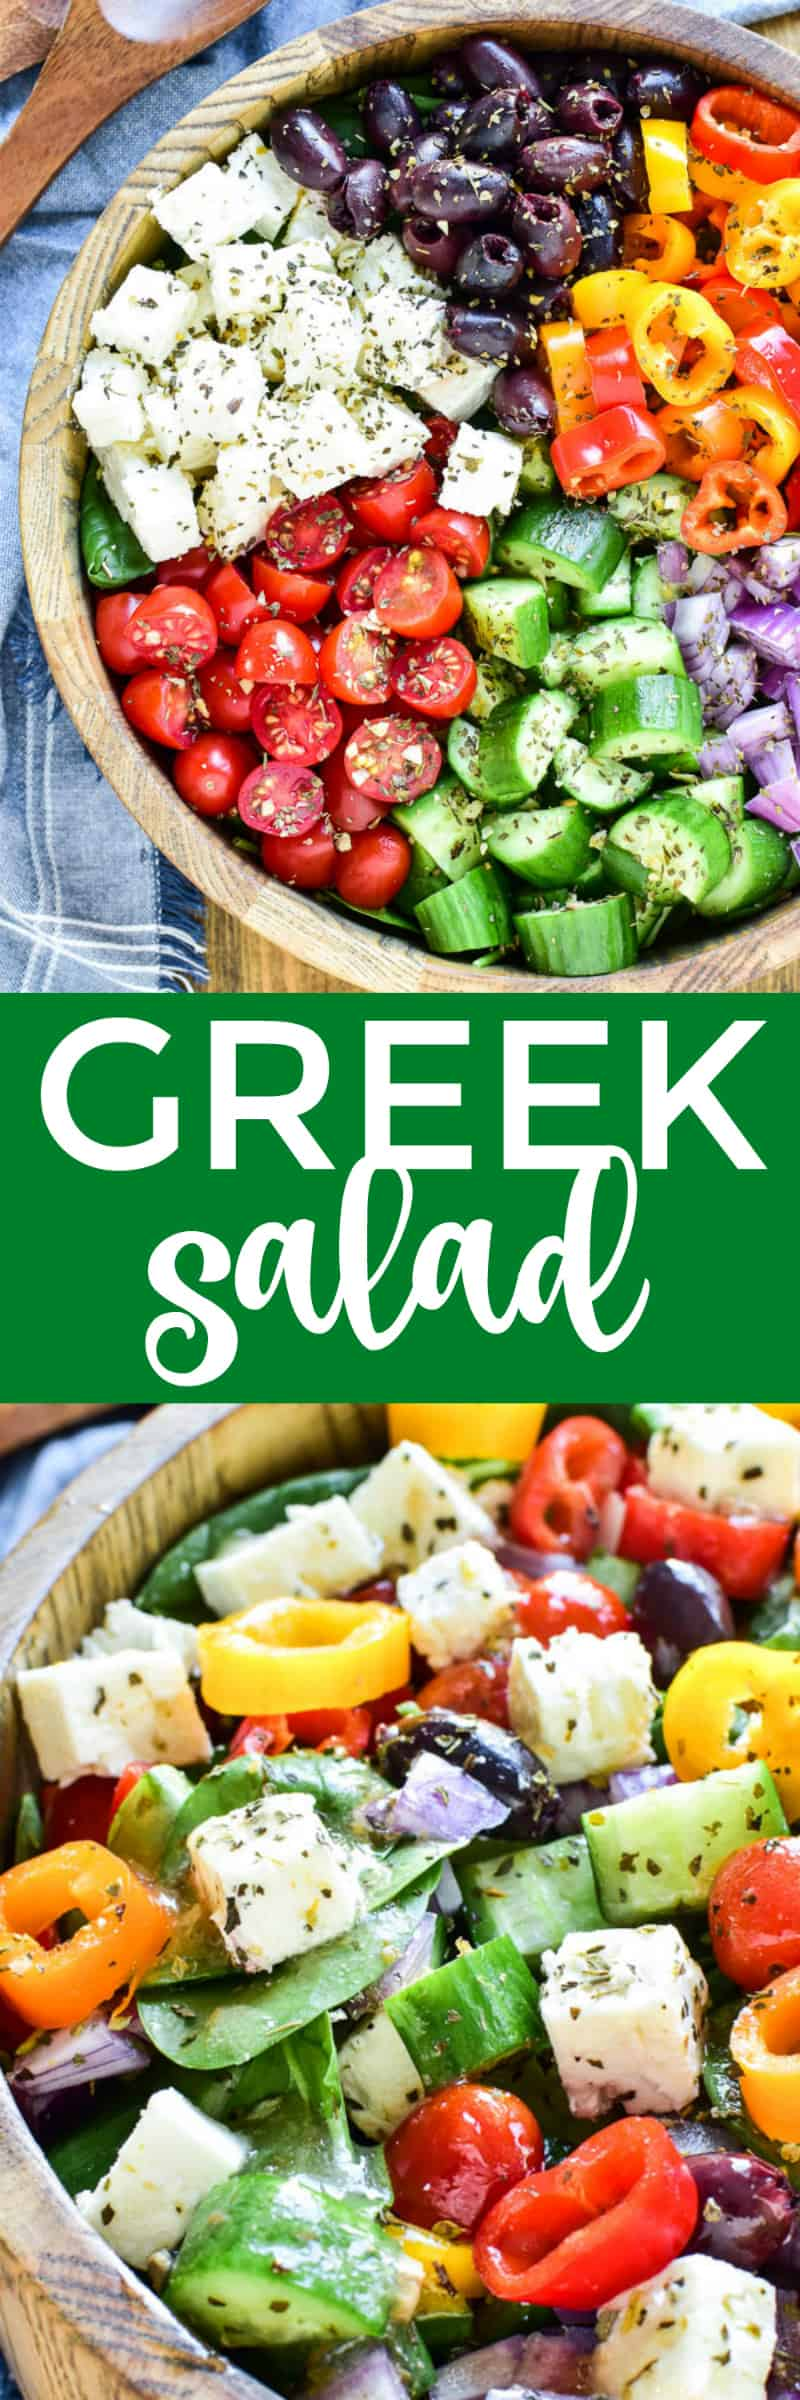 Collage image of Greek Salad